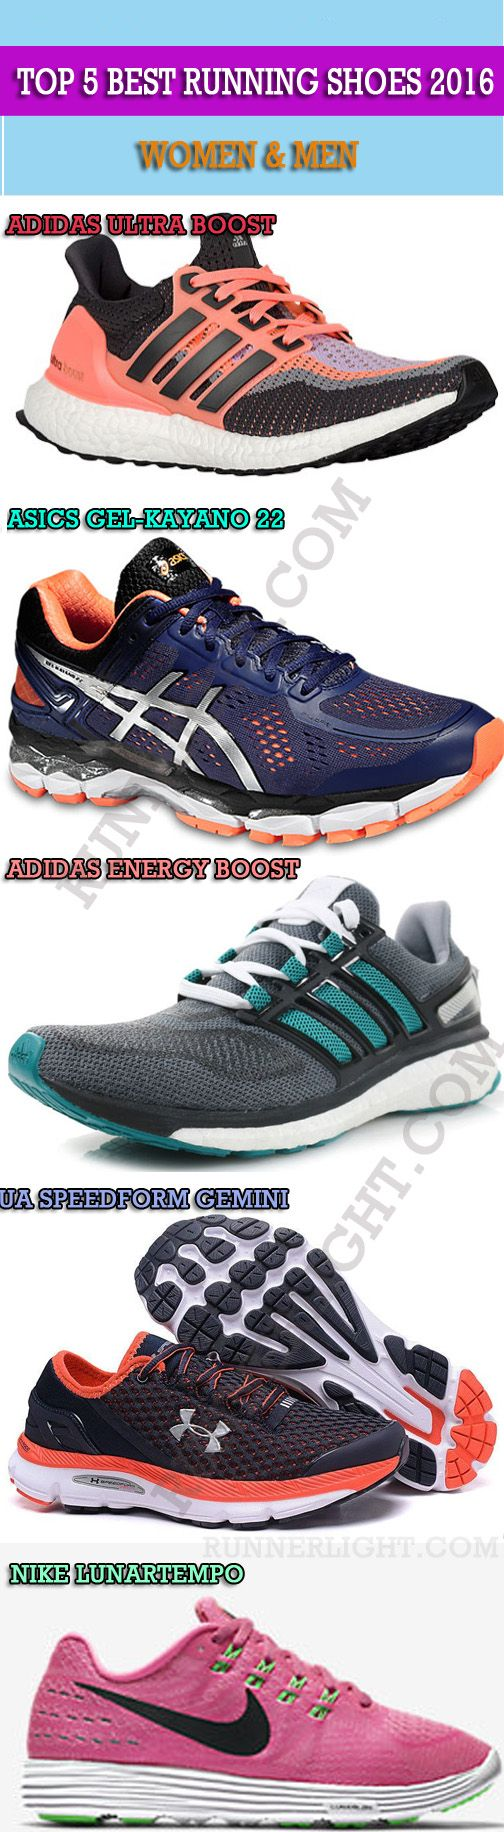 20c50274c25 op 5 BEST Running Shoes 2016 - Women   Men.  runner